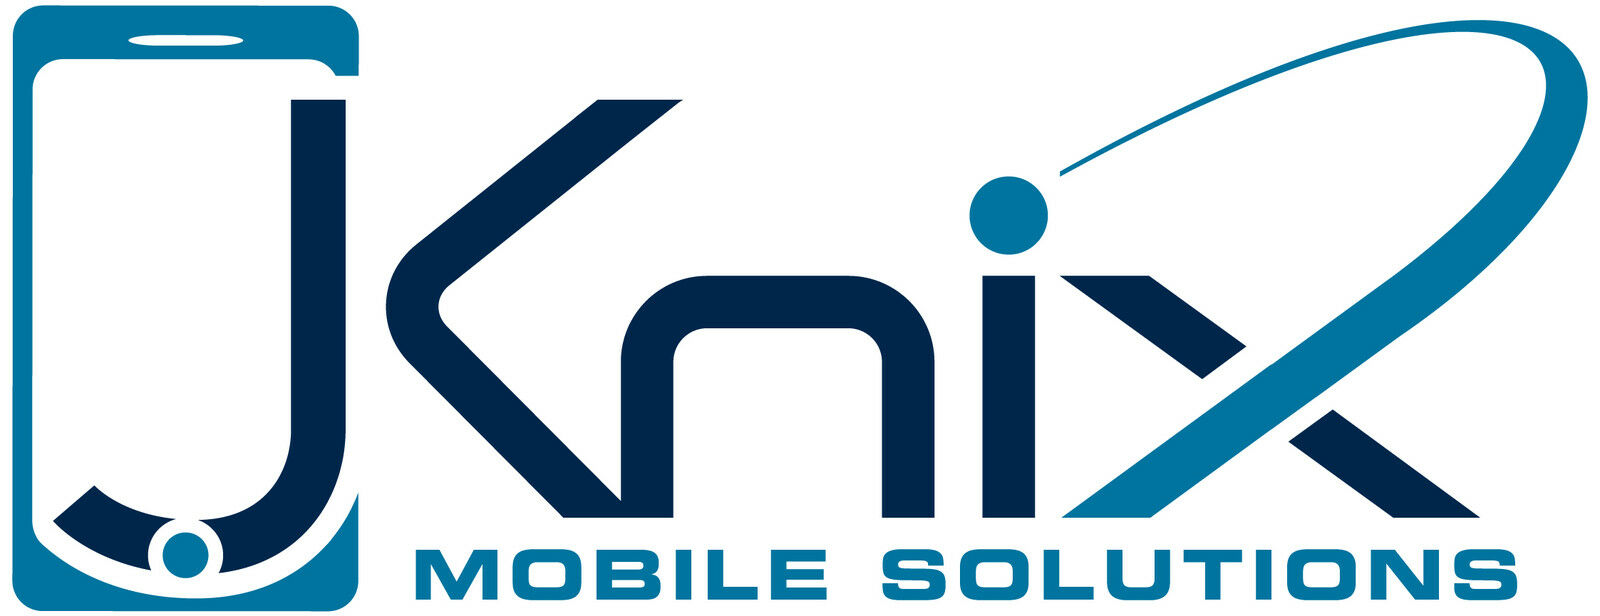 JKNIX MOBILE SOLUTIONS